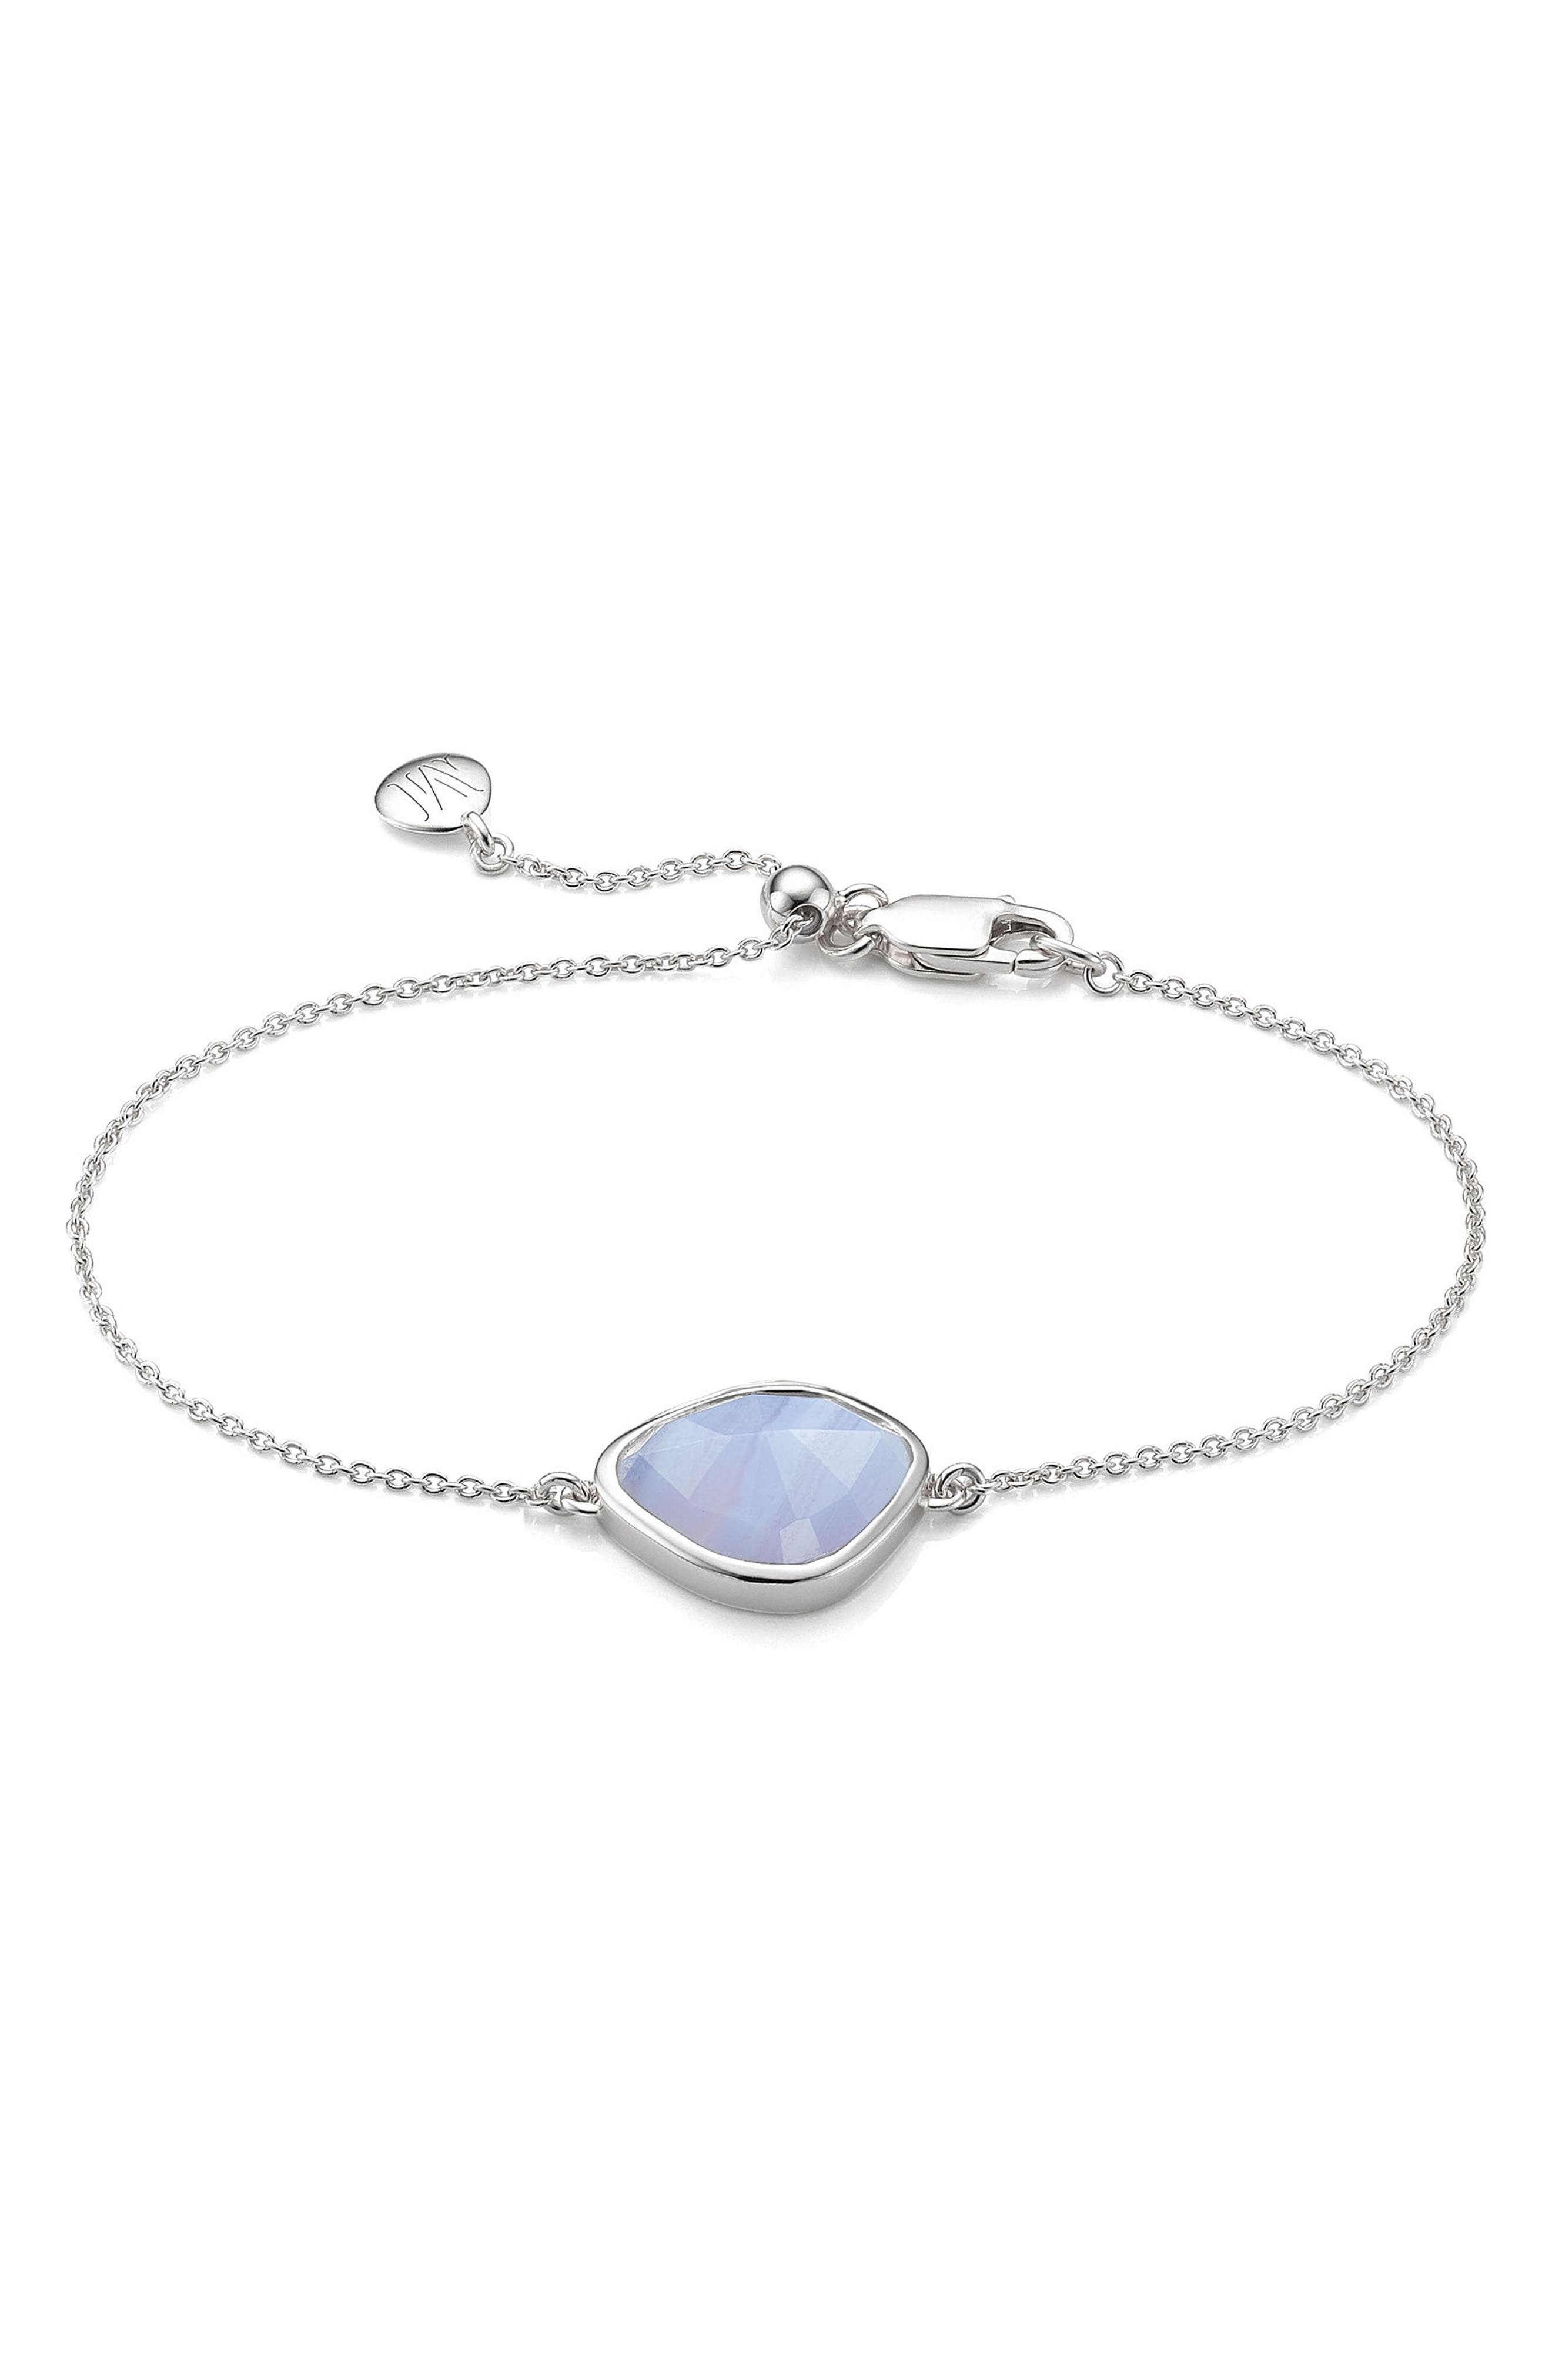 Siren Nugget Bracelet,                         Main,                         color, Silver/ Blue Lace Agate